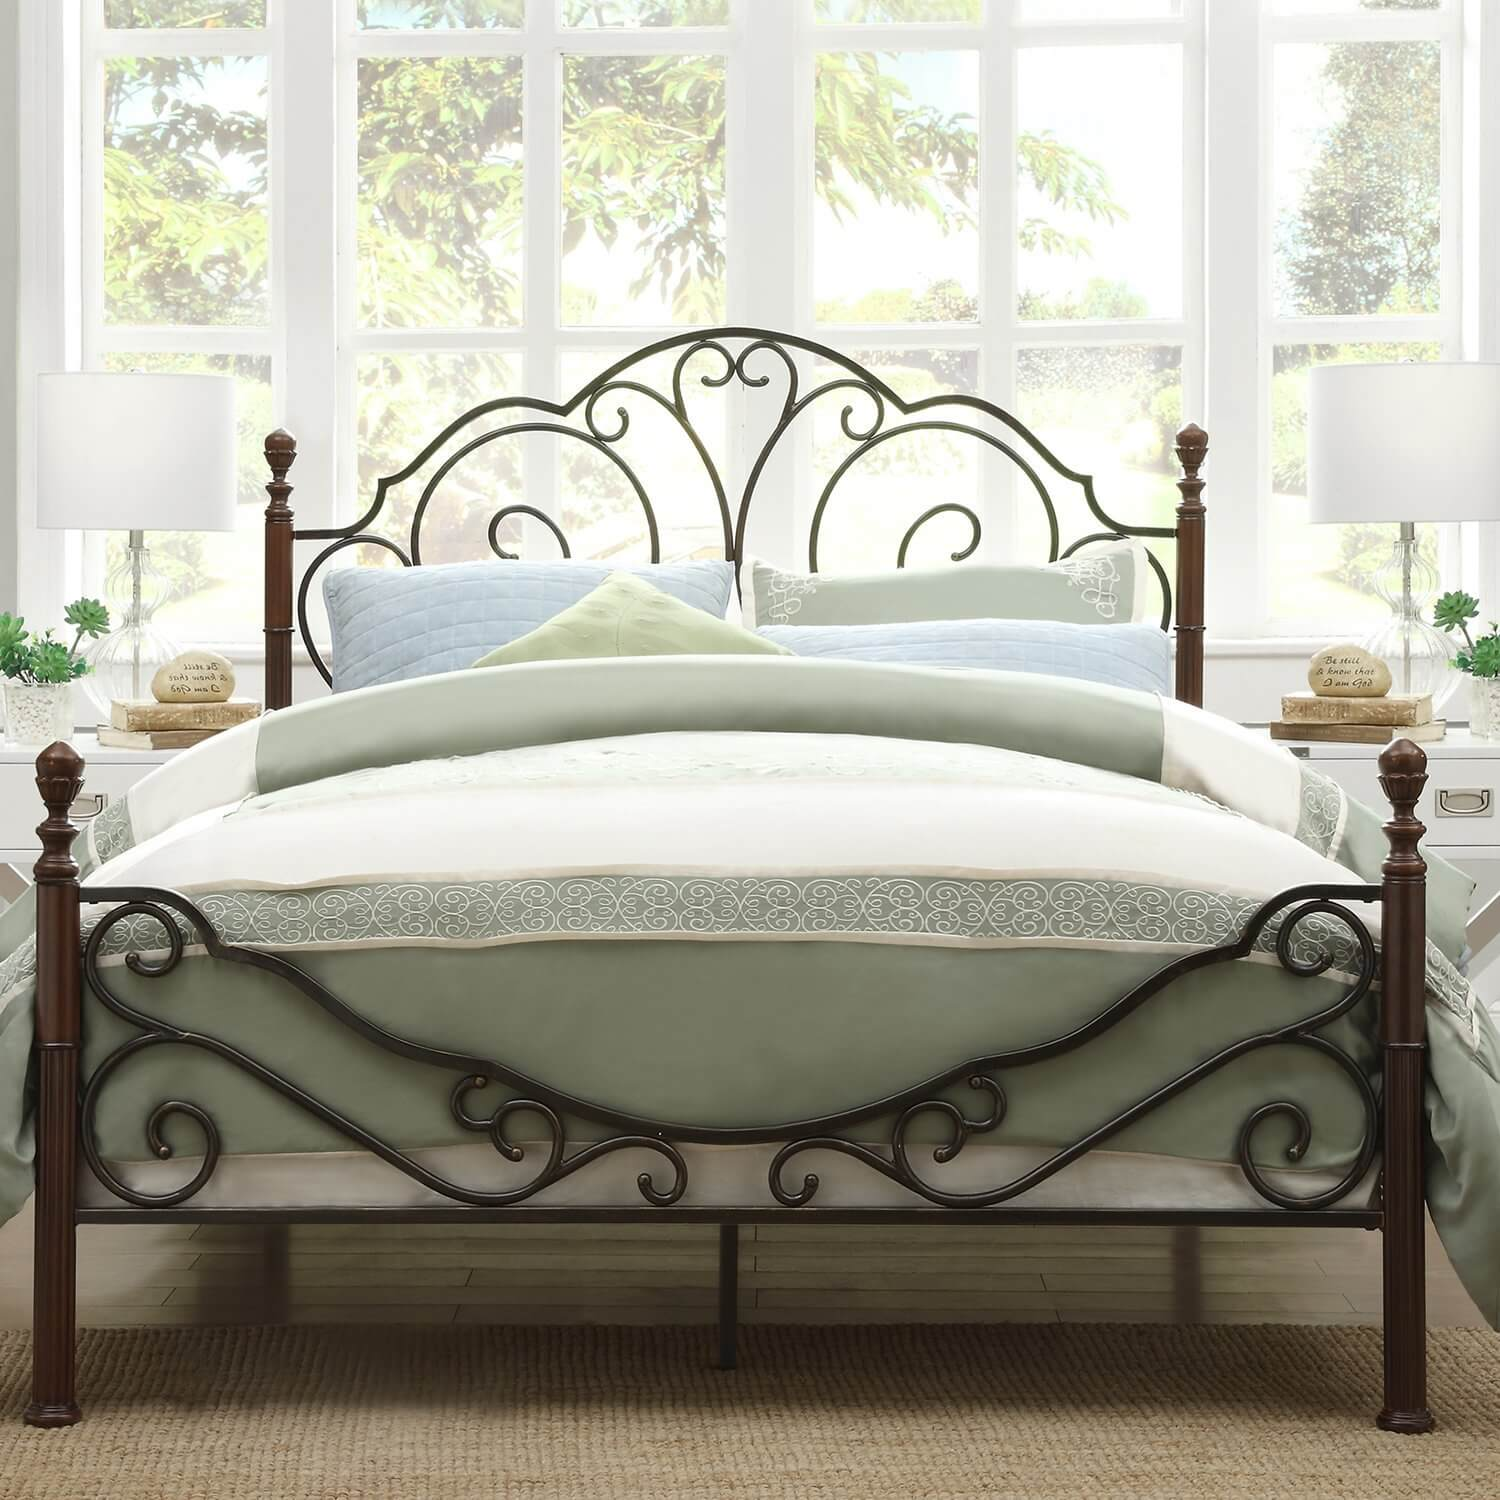 amazing wrought iron beds that can be found on amazon count me in